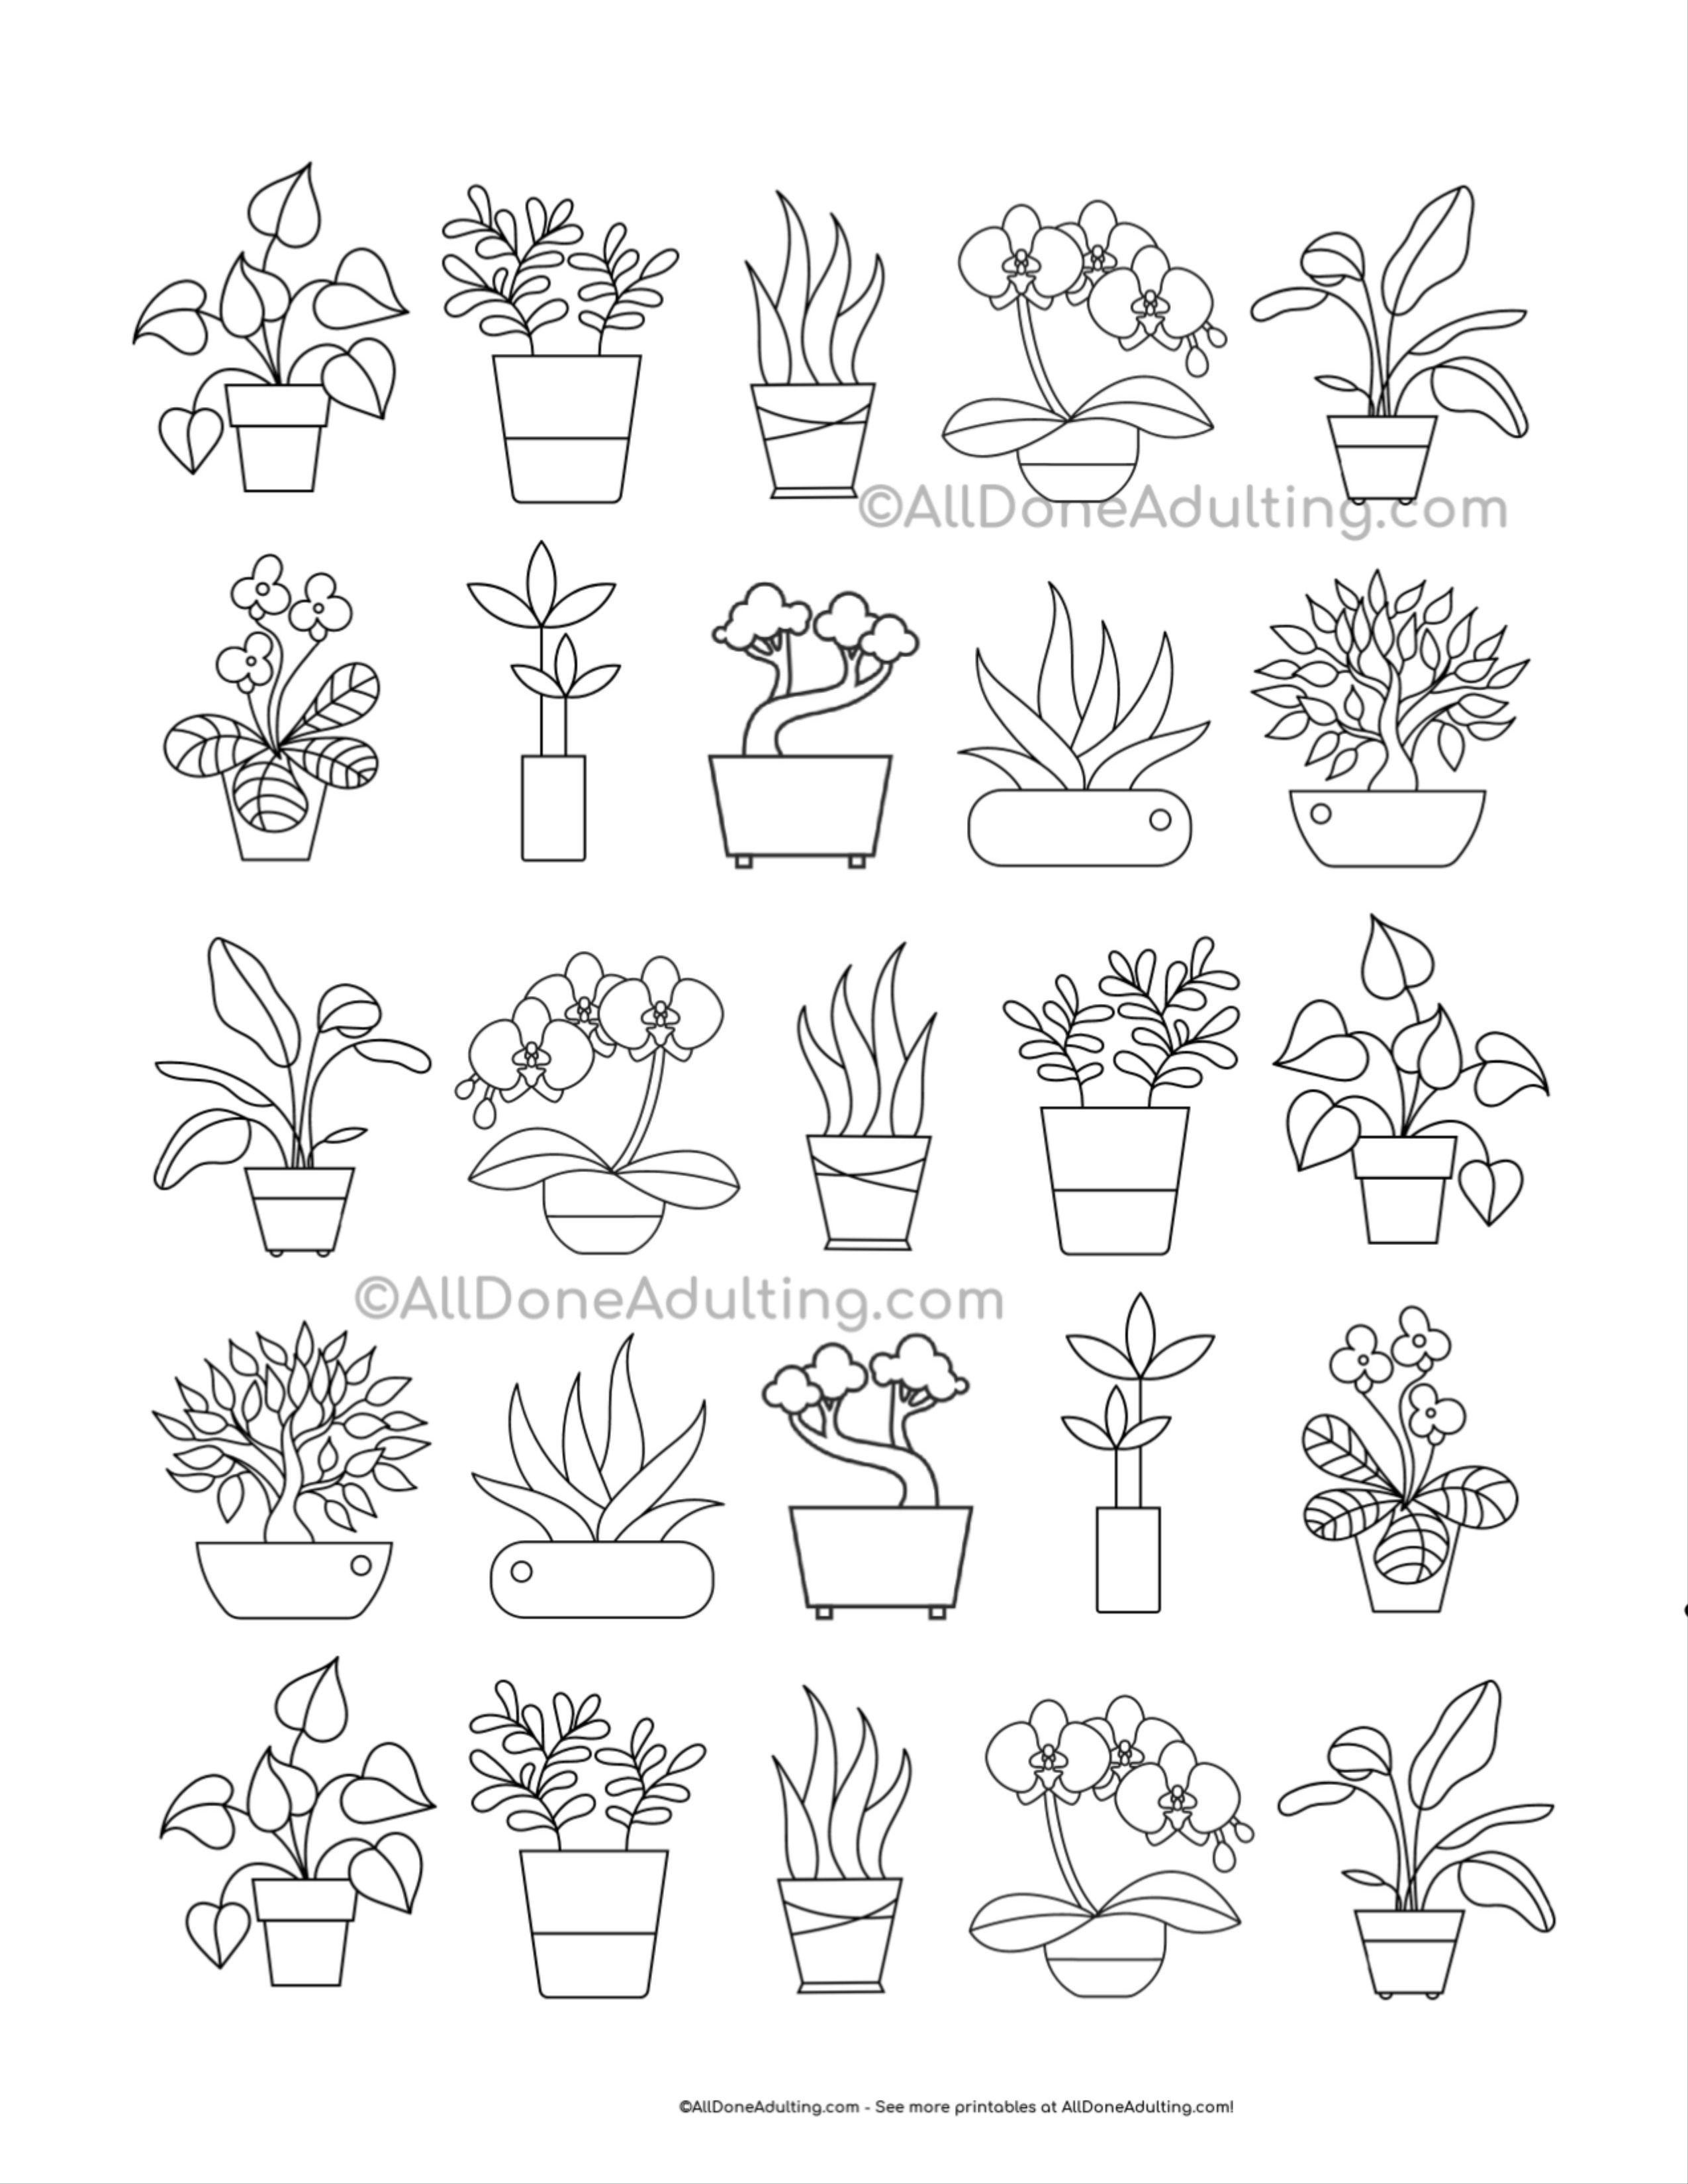 Pin On Printable Coloring Pages And Coloring Sheets